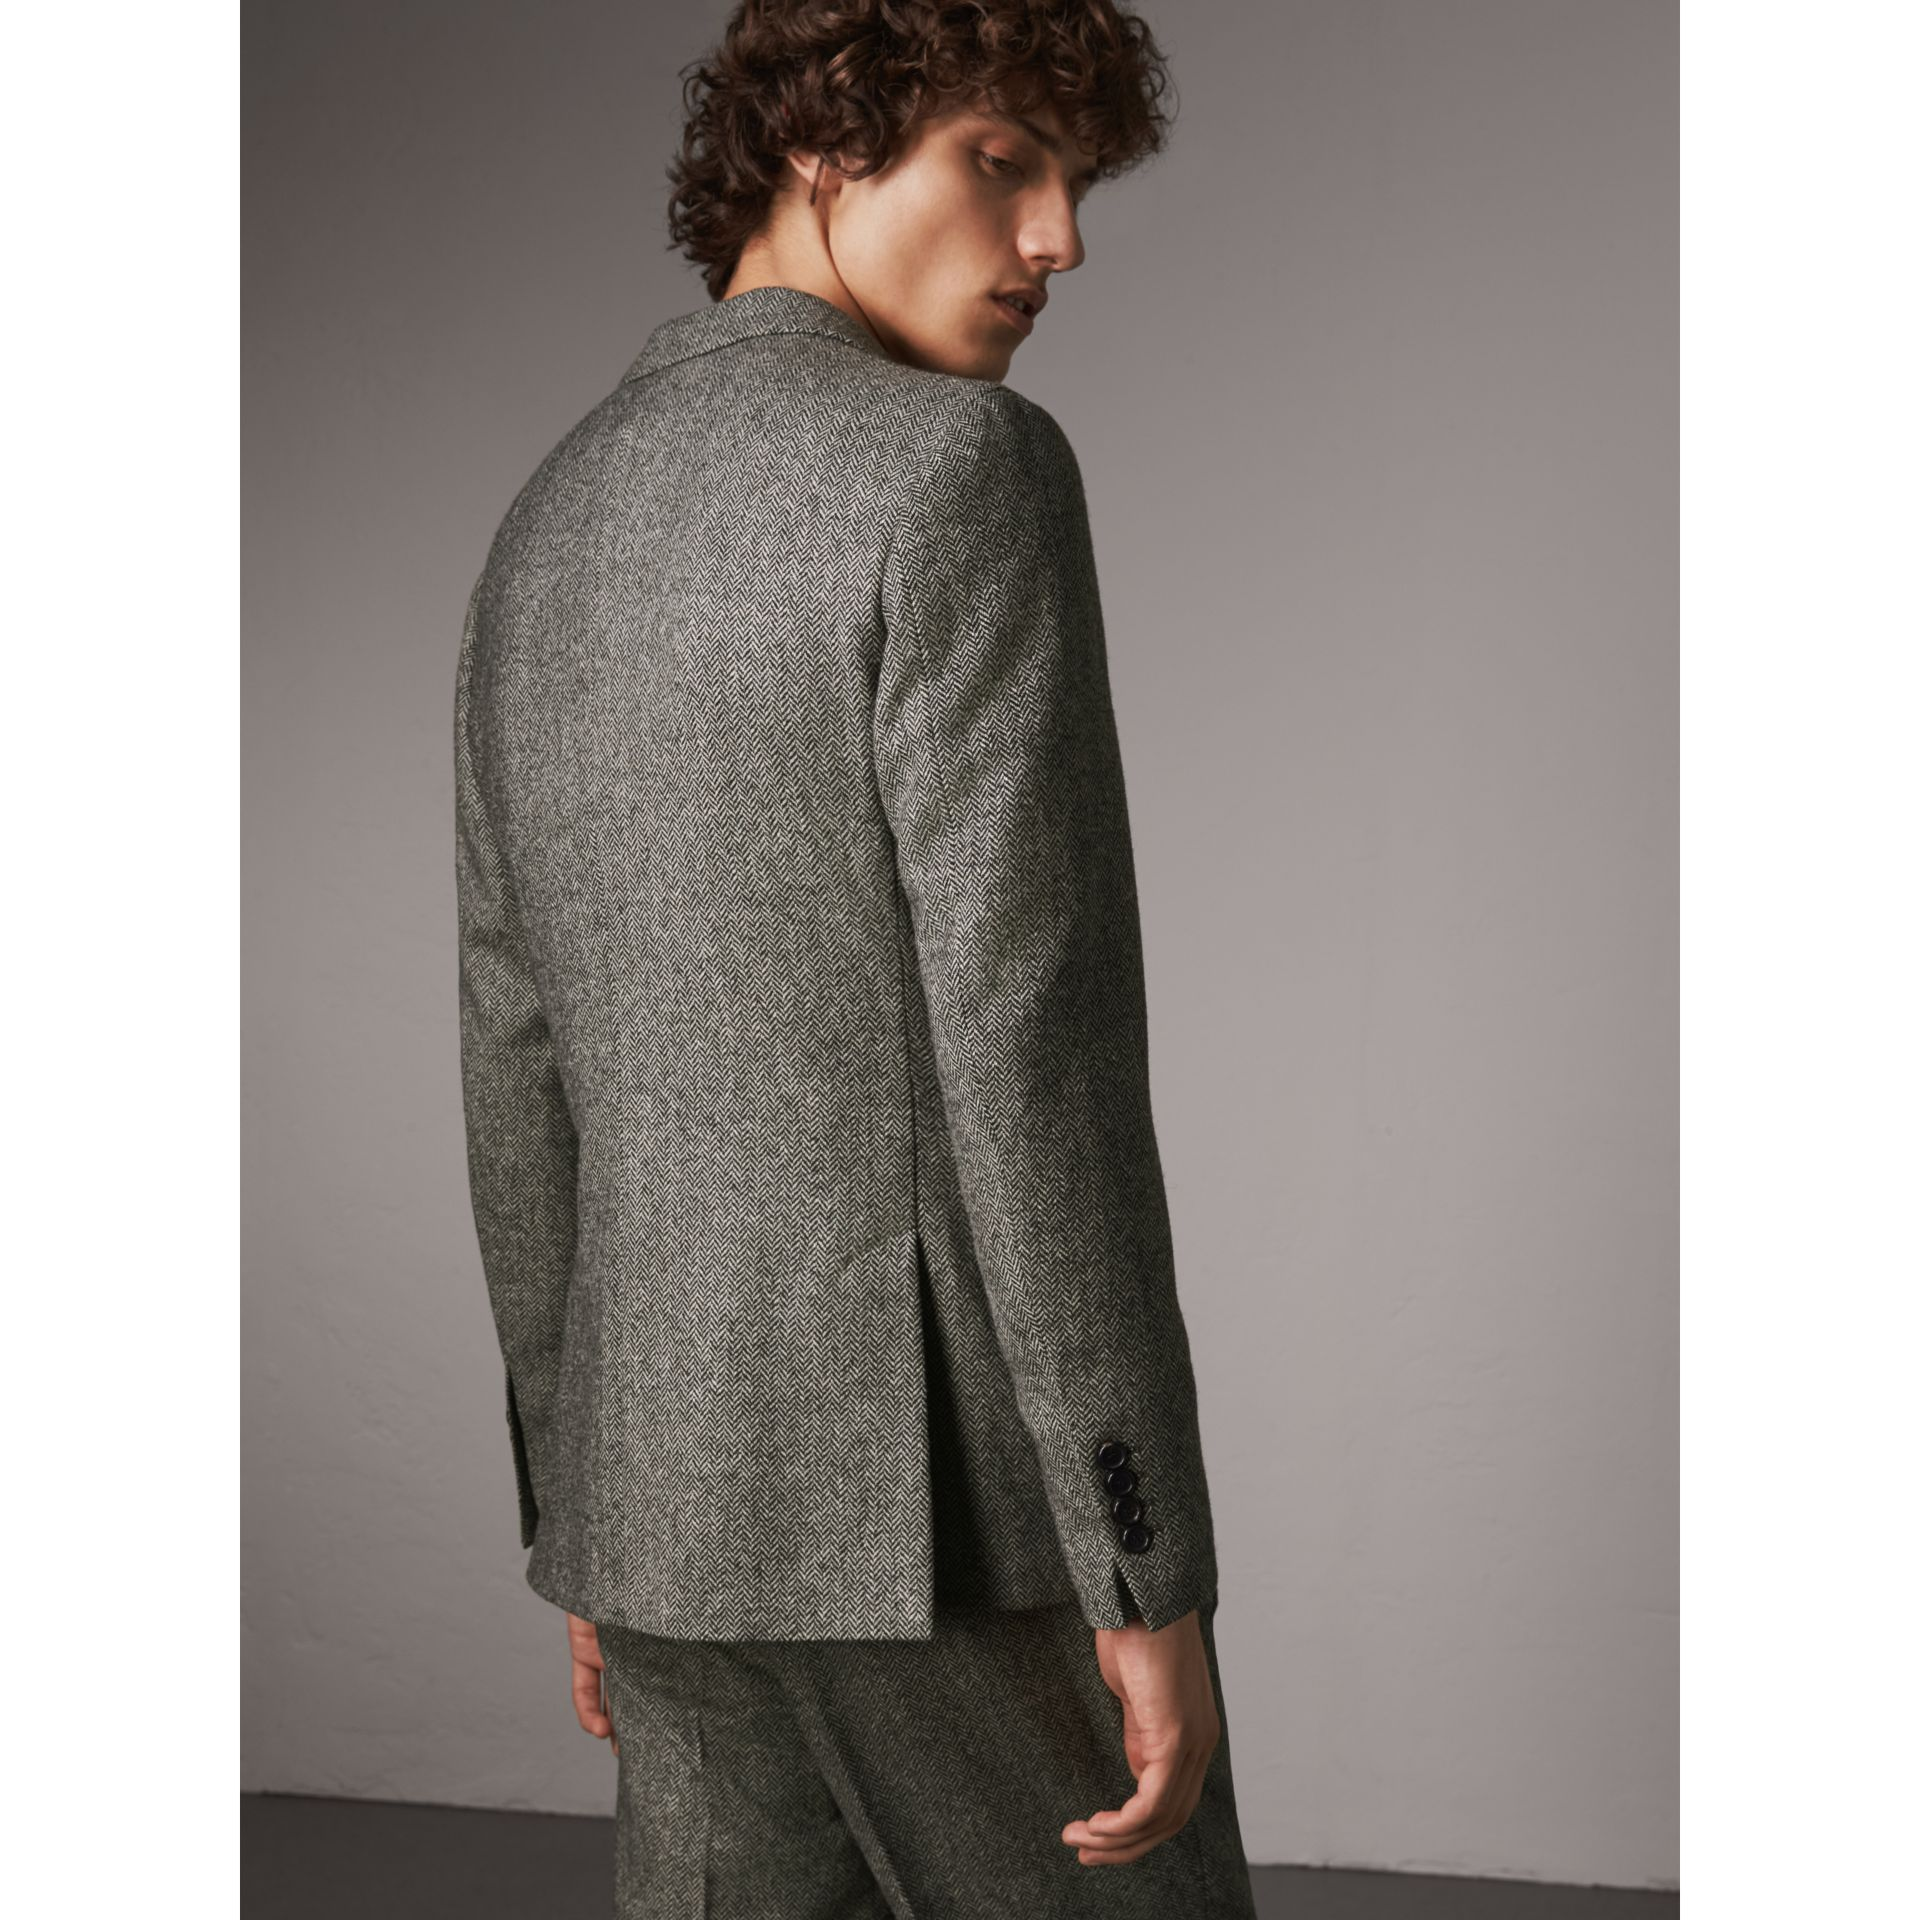 Soho Fit Herringbone Wool Tailored Jacket in Black / White - Men | Burberry - gallery image 3